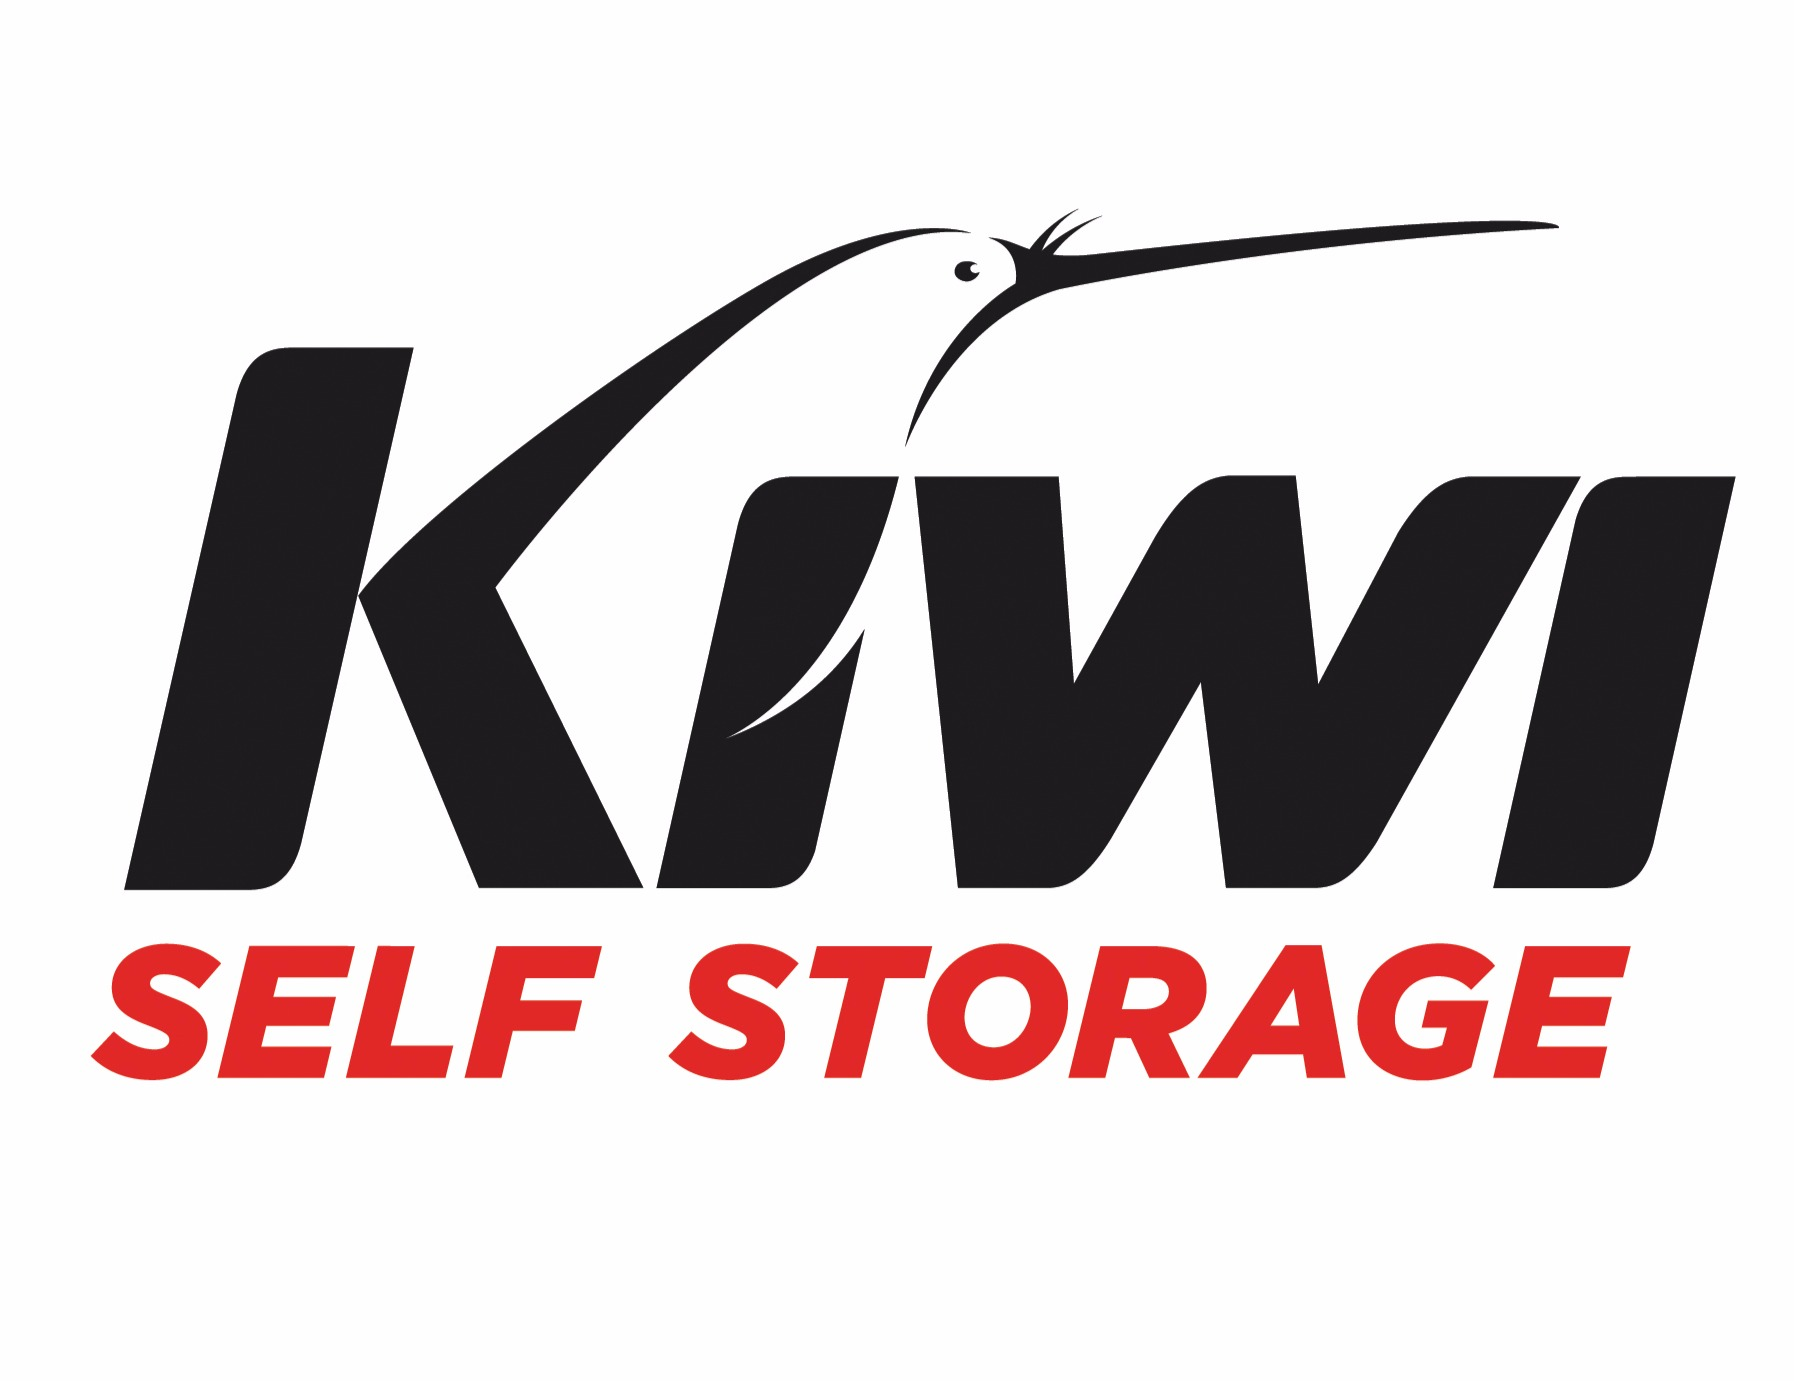 Kiwi Self Storage Limited